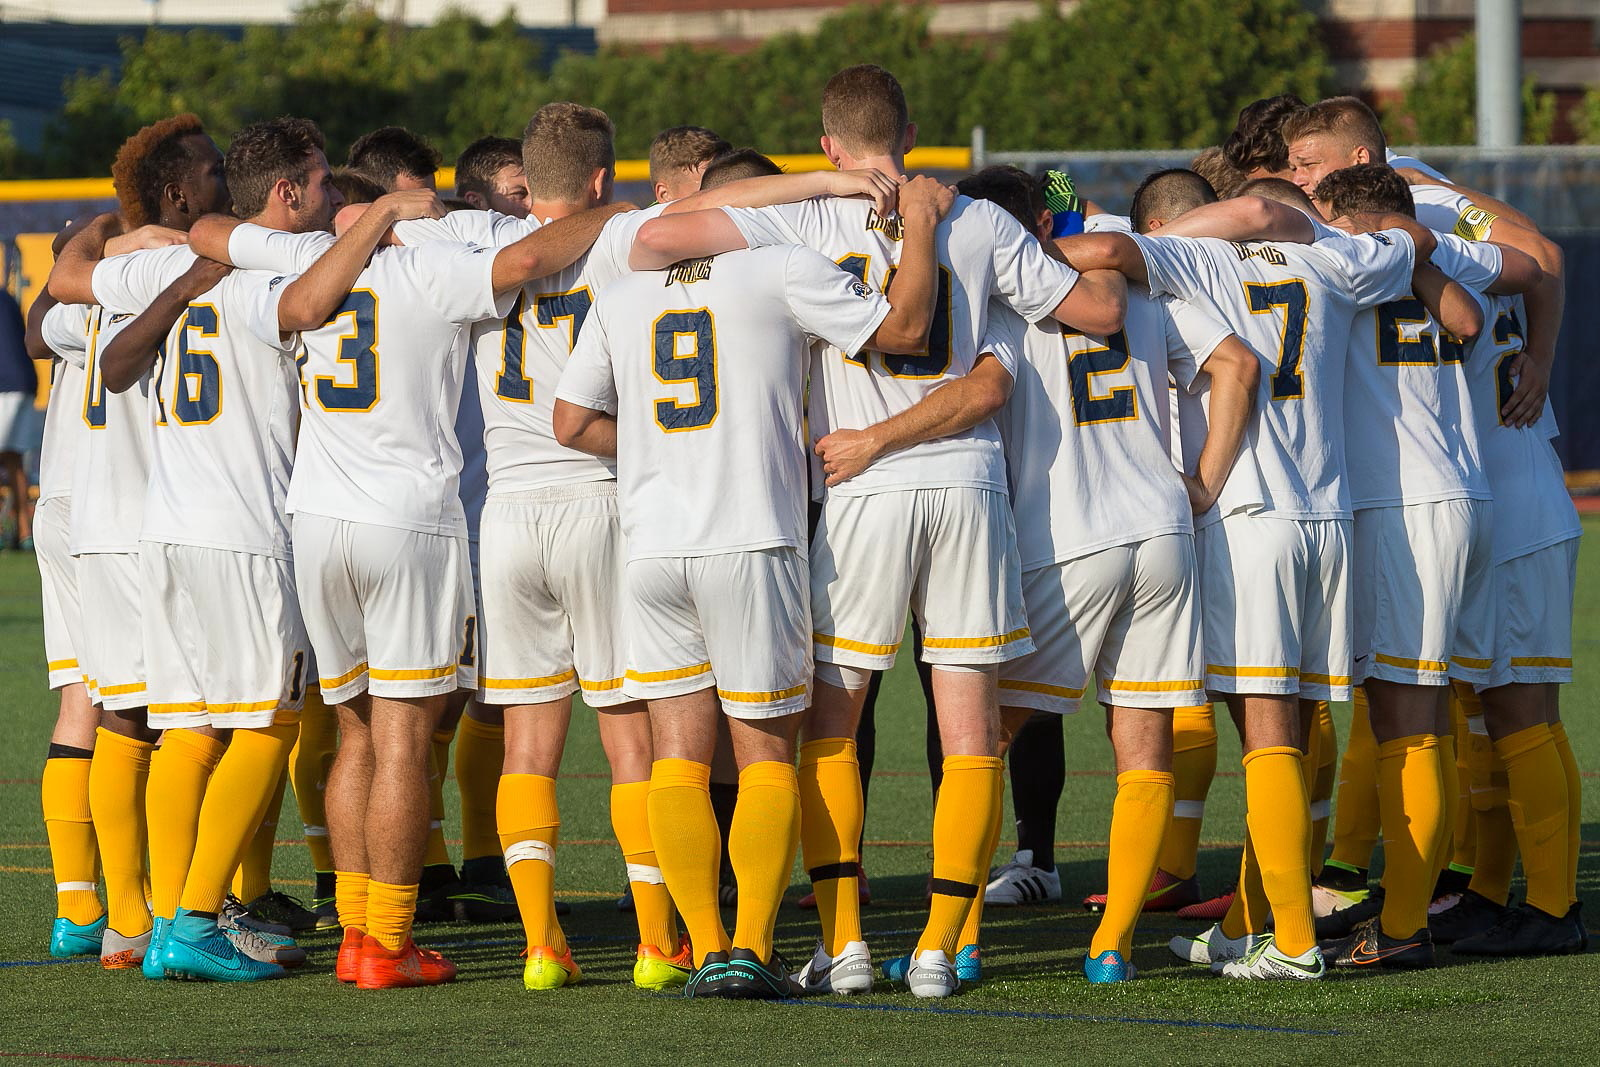 The Canisius Griffs have won a MAAC playoff game for the first time since 2007. (Don Nieman/Special to The News)